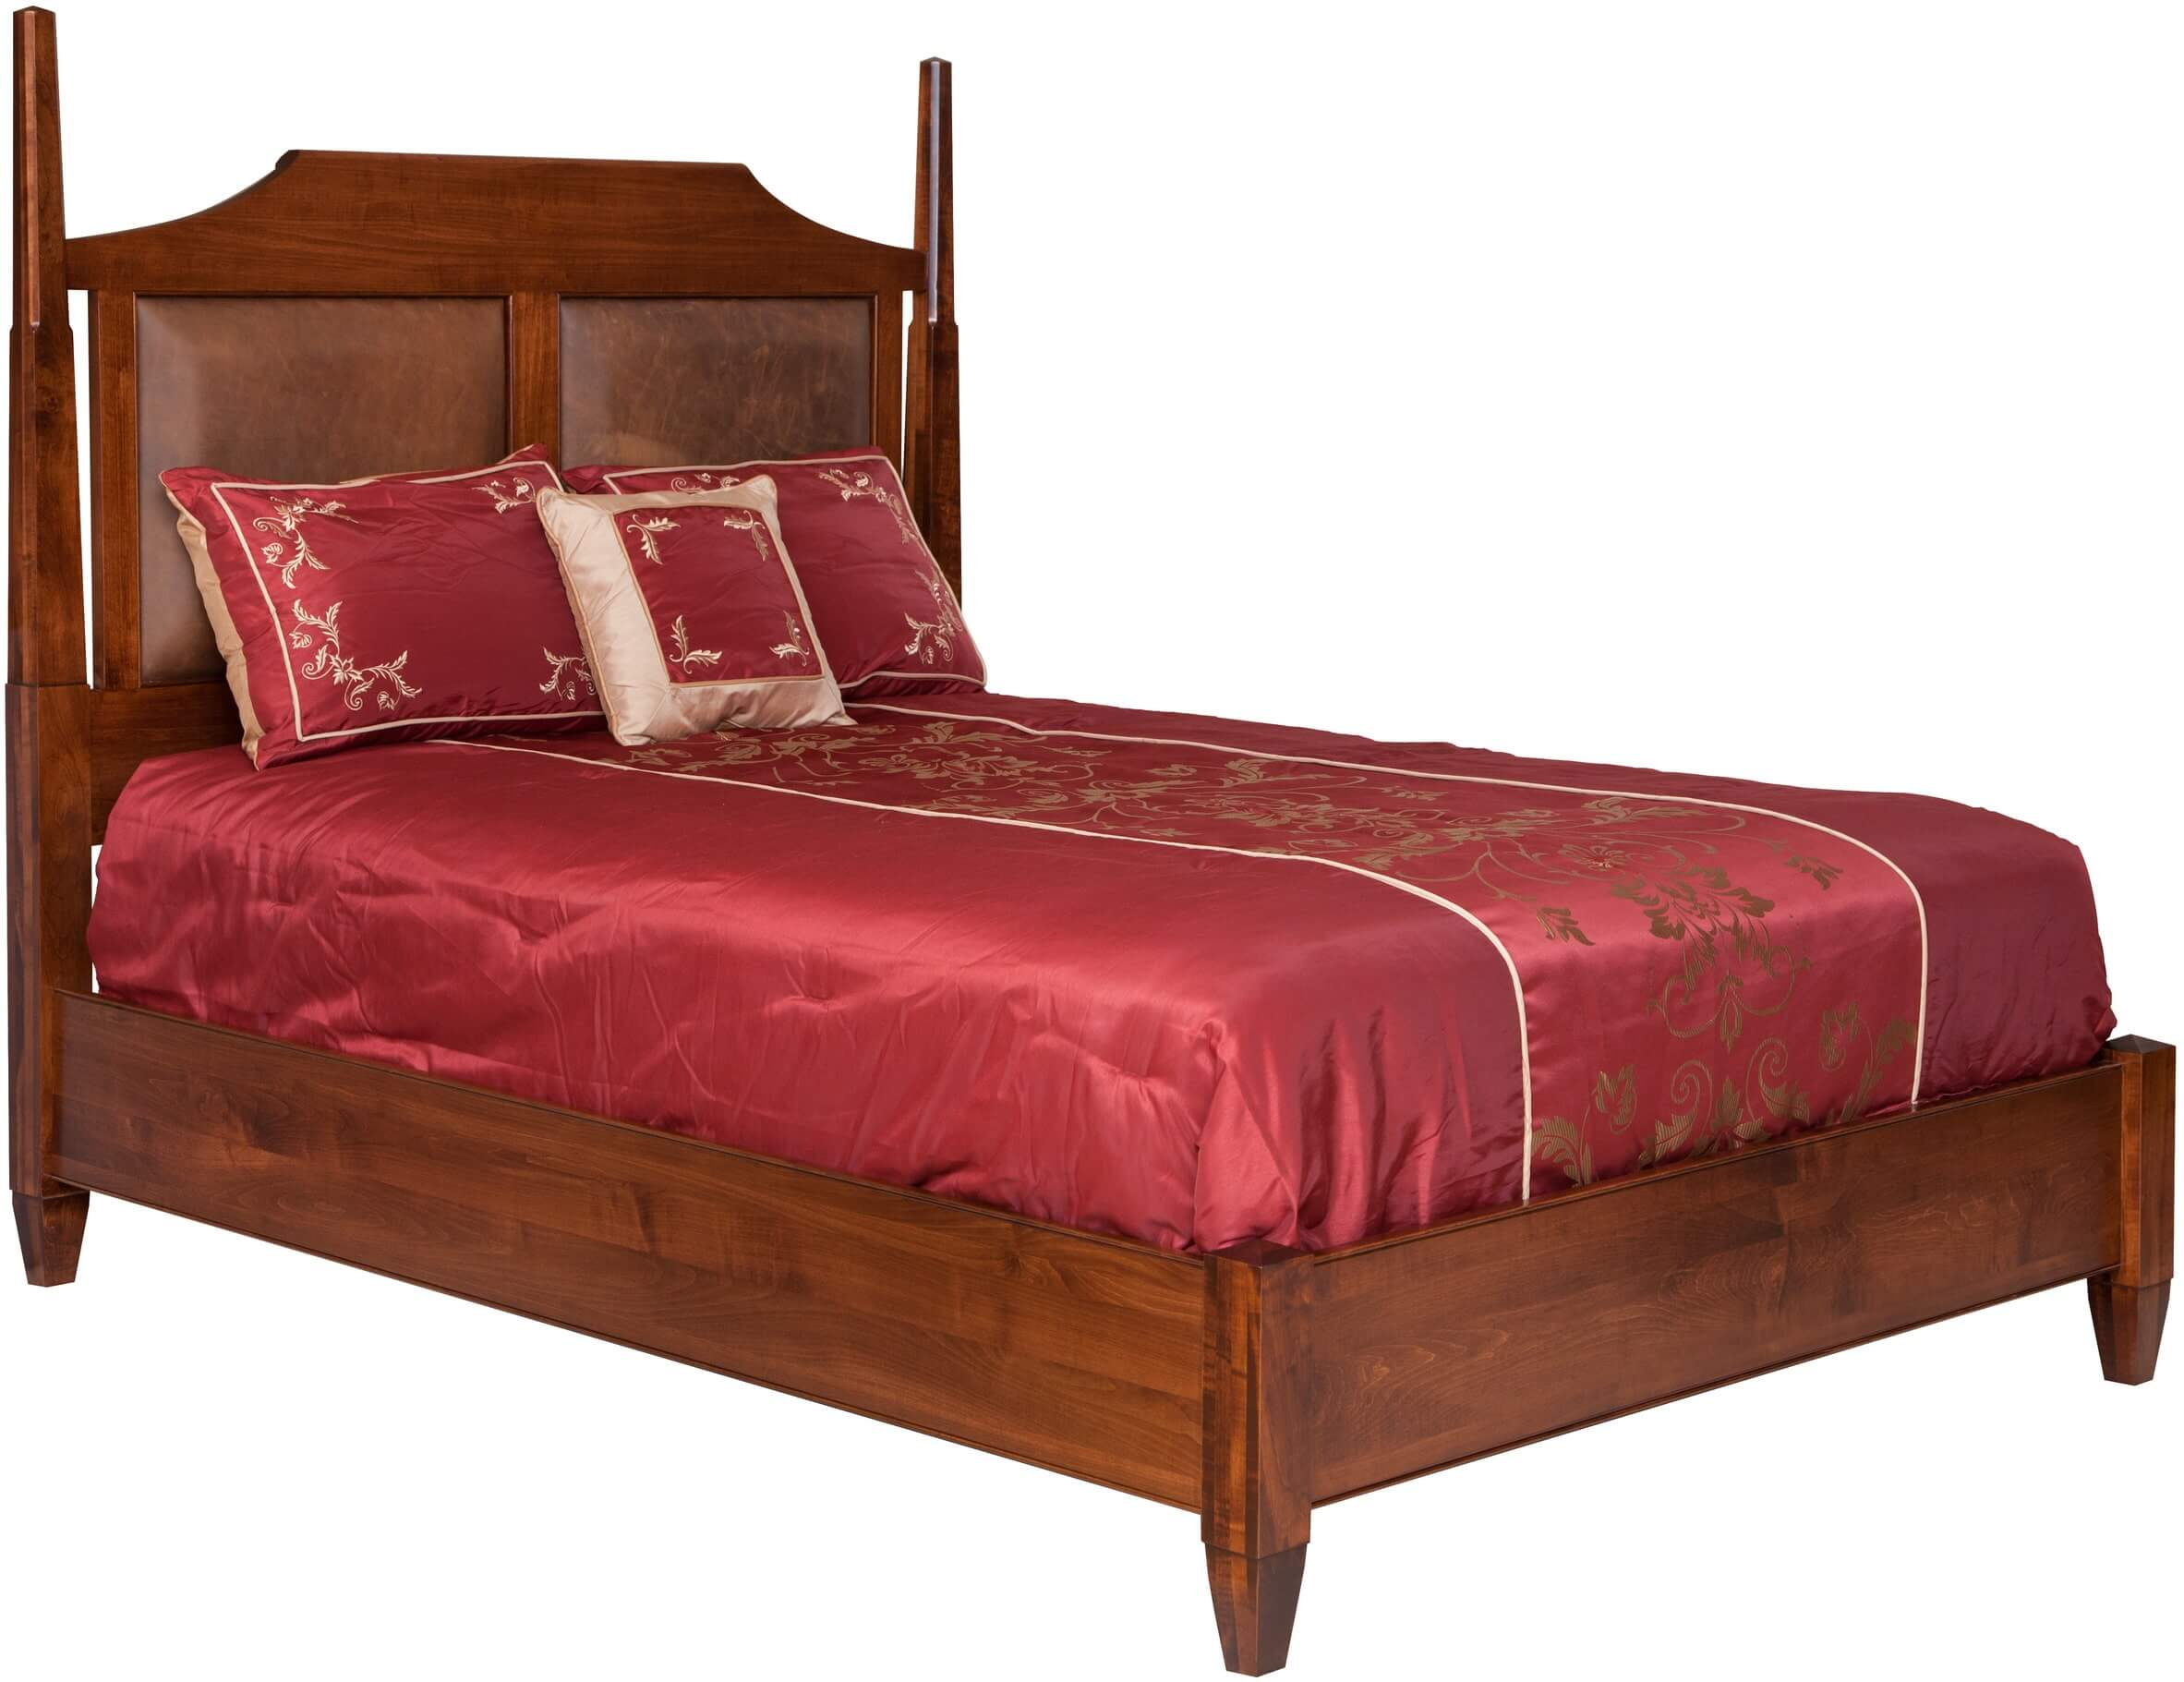 Park Avenue 5th Avenue Bed w/ Leather Panel Headboard